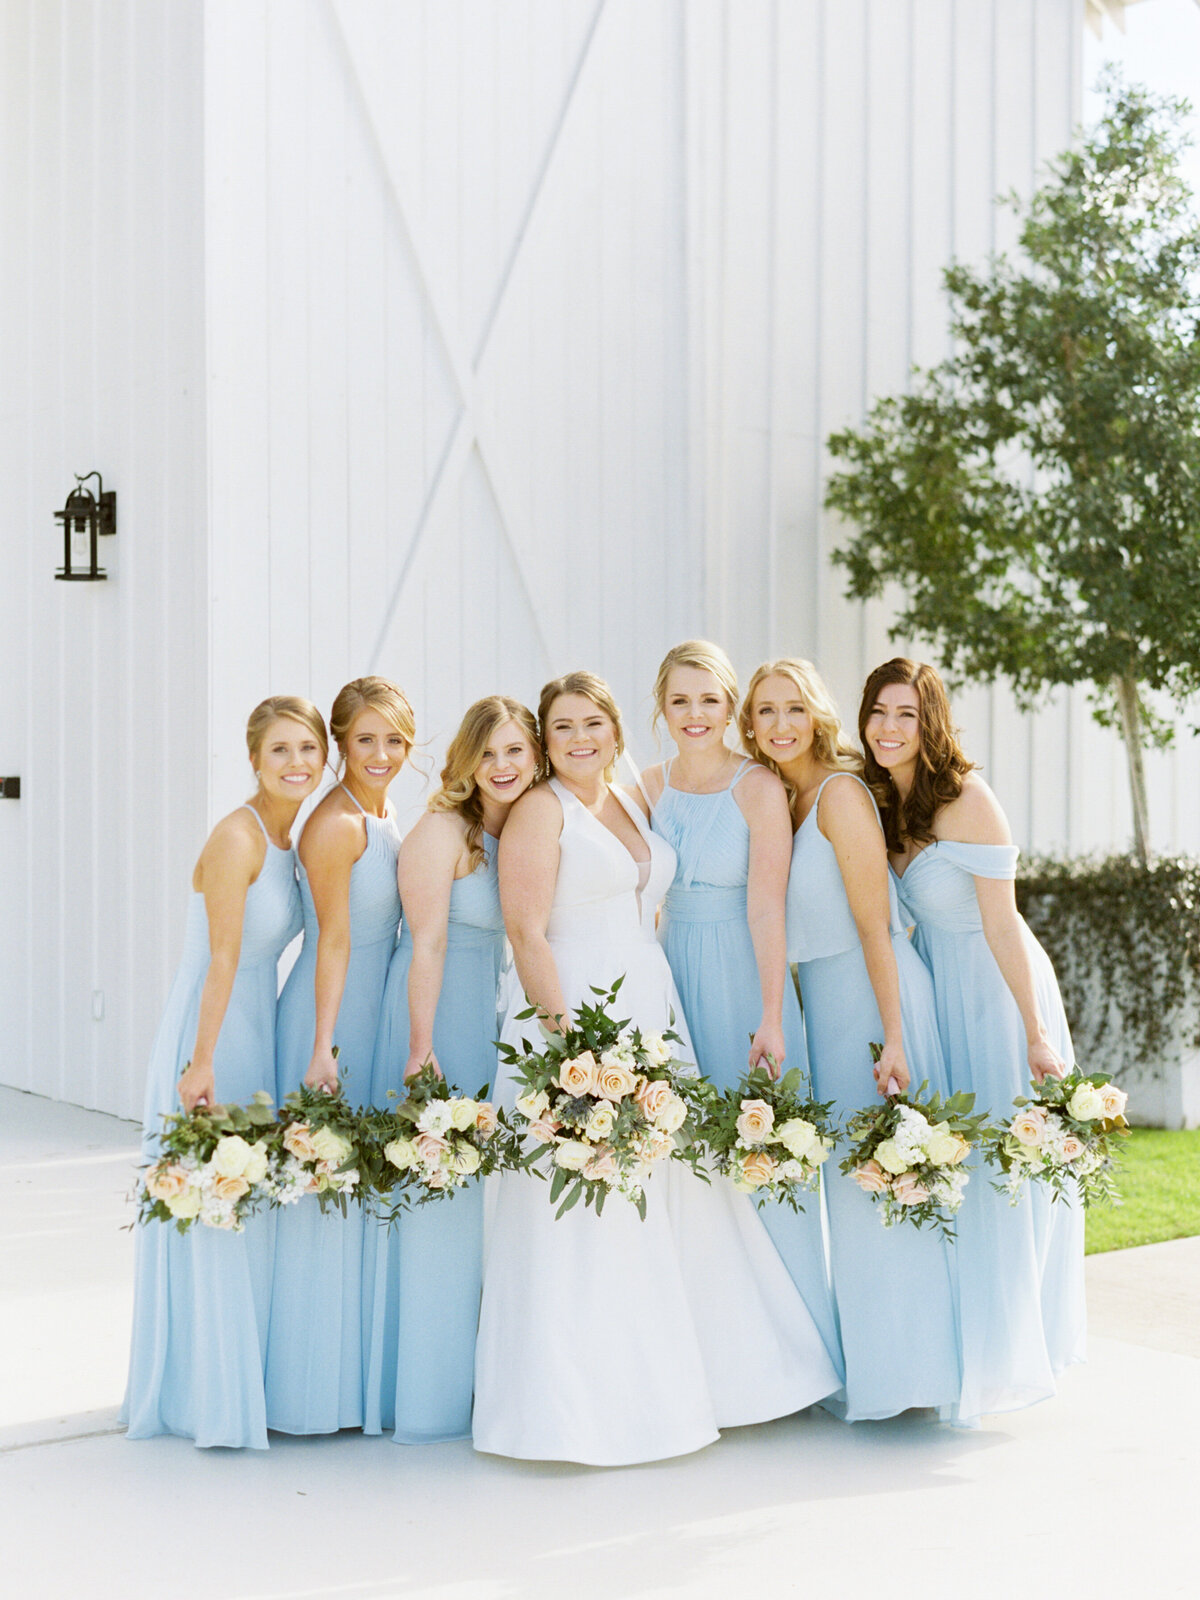 the-farmhouse-wedding-houston-texas-wedding-photographer-mackenzie-reiter-photography-19